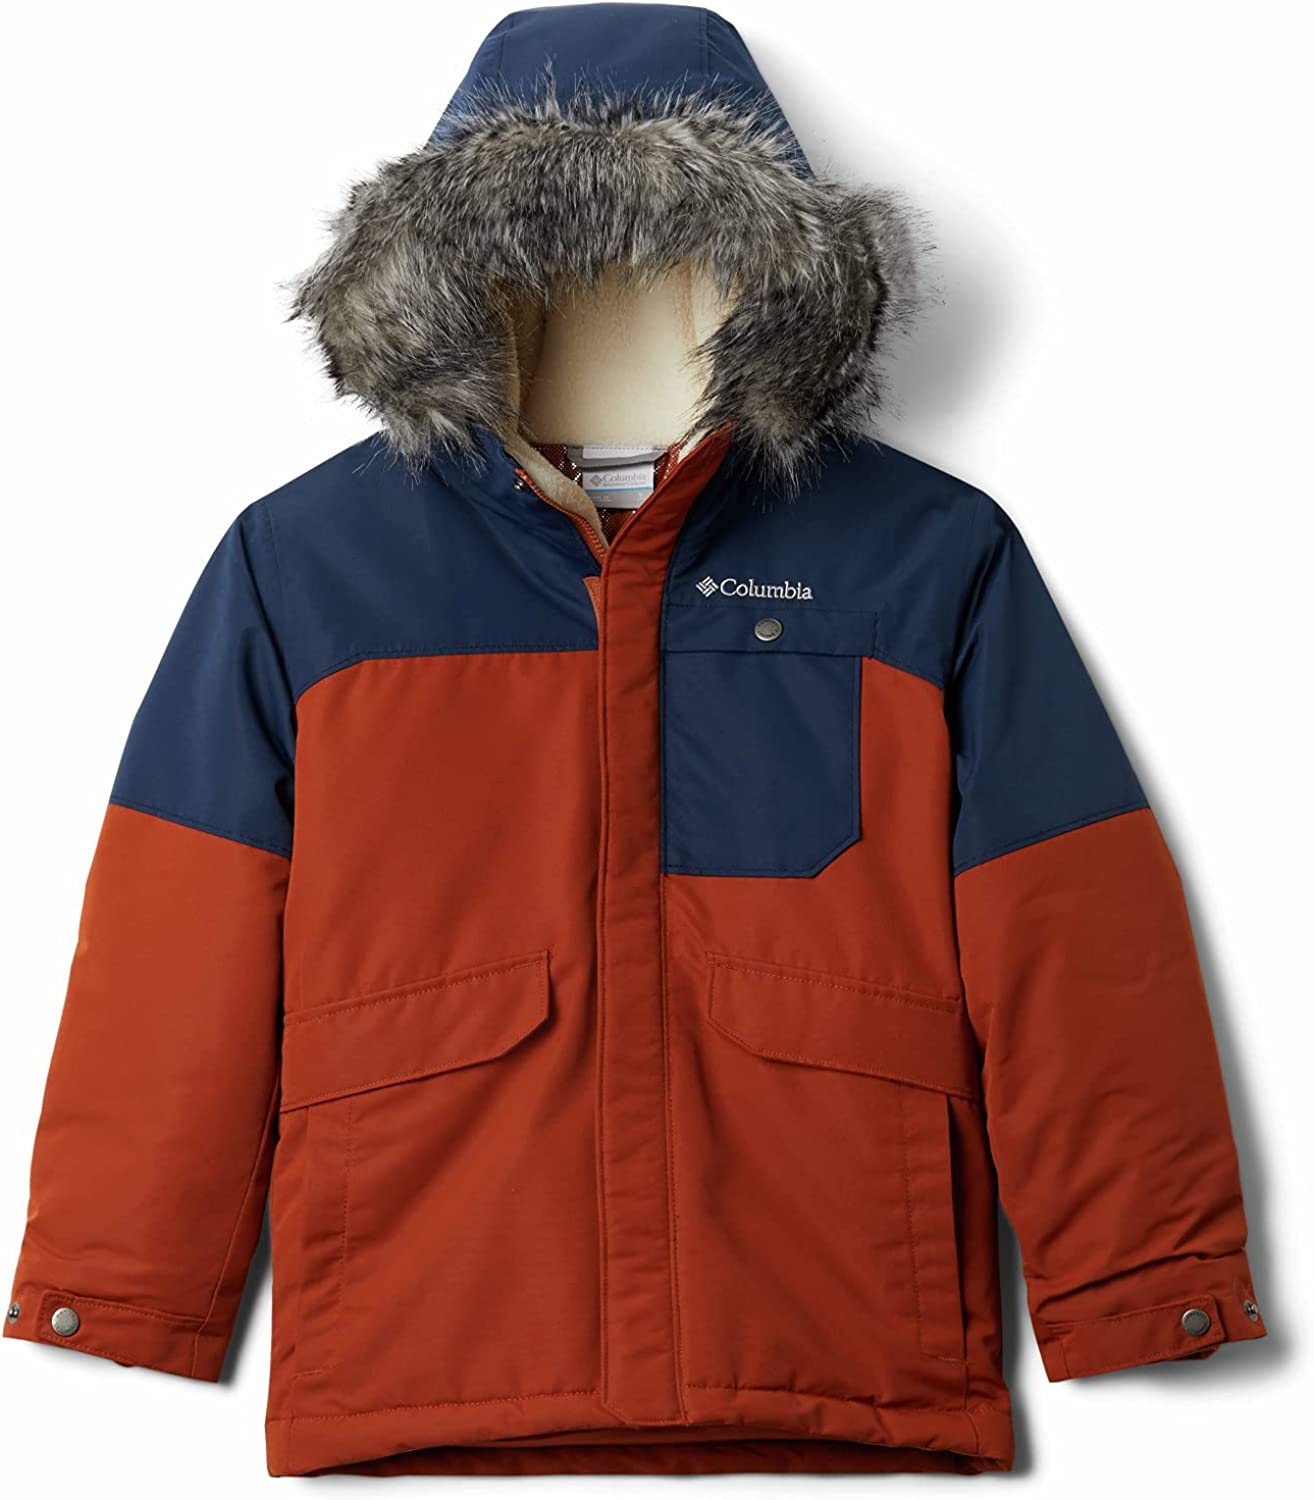 Columbia Boys Quality inspection Nordic A surprise price is realized StriderJacket